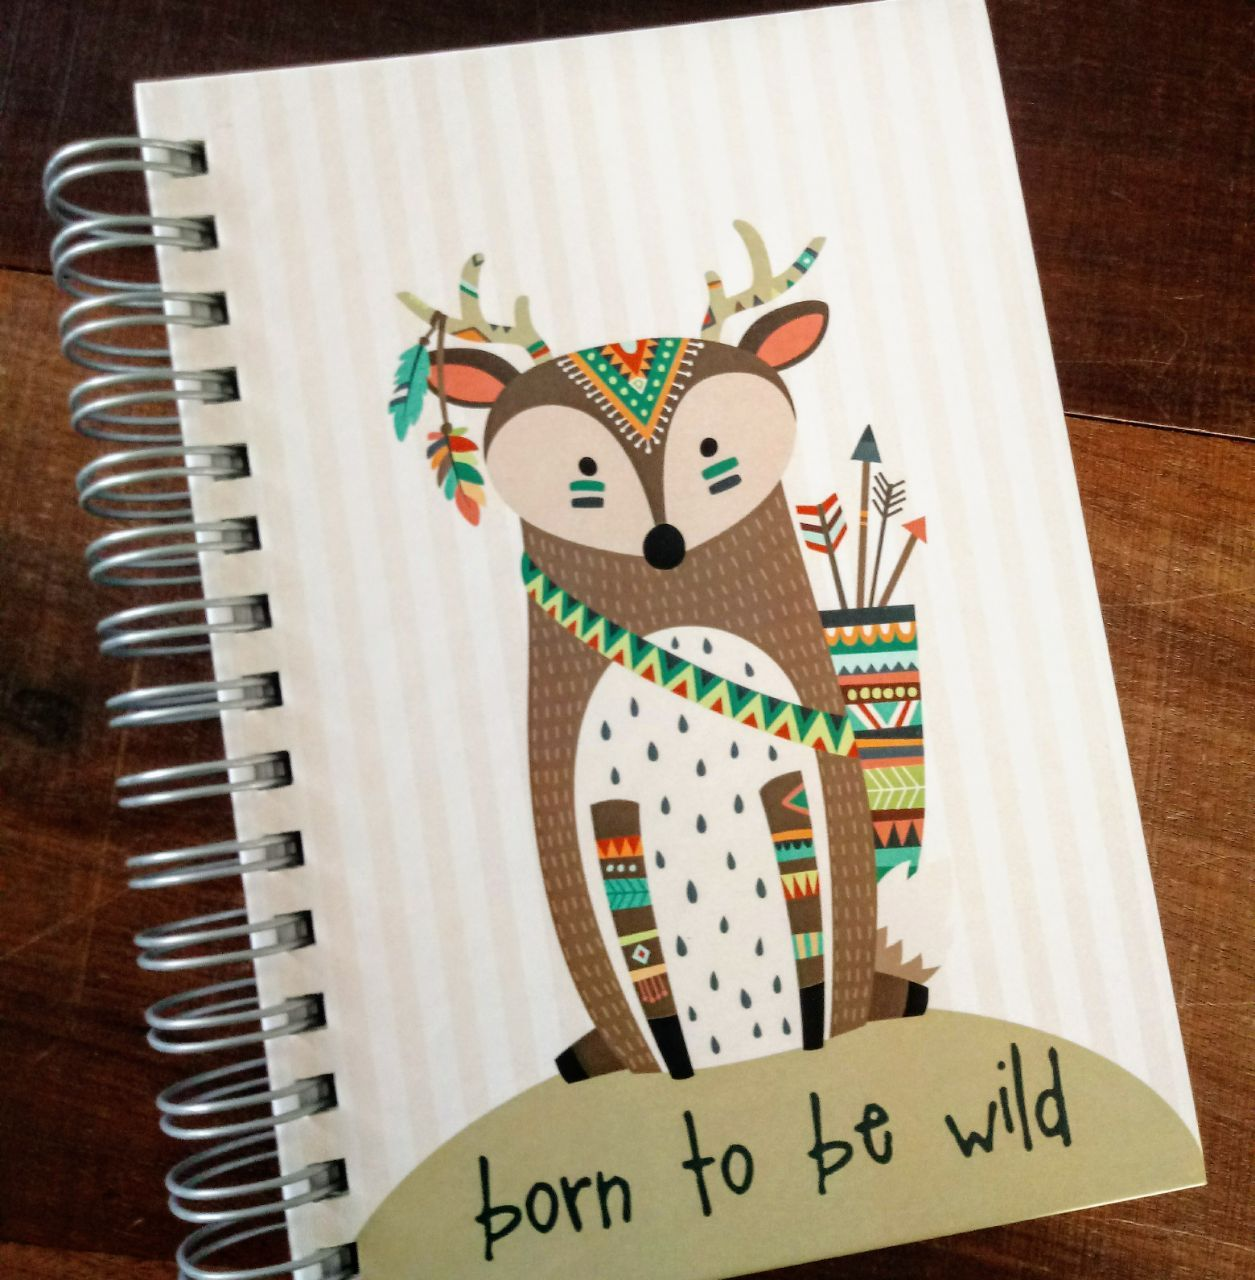 Agenda Born to be wild - Rena